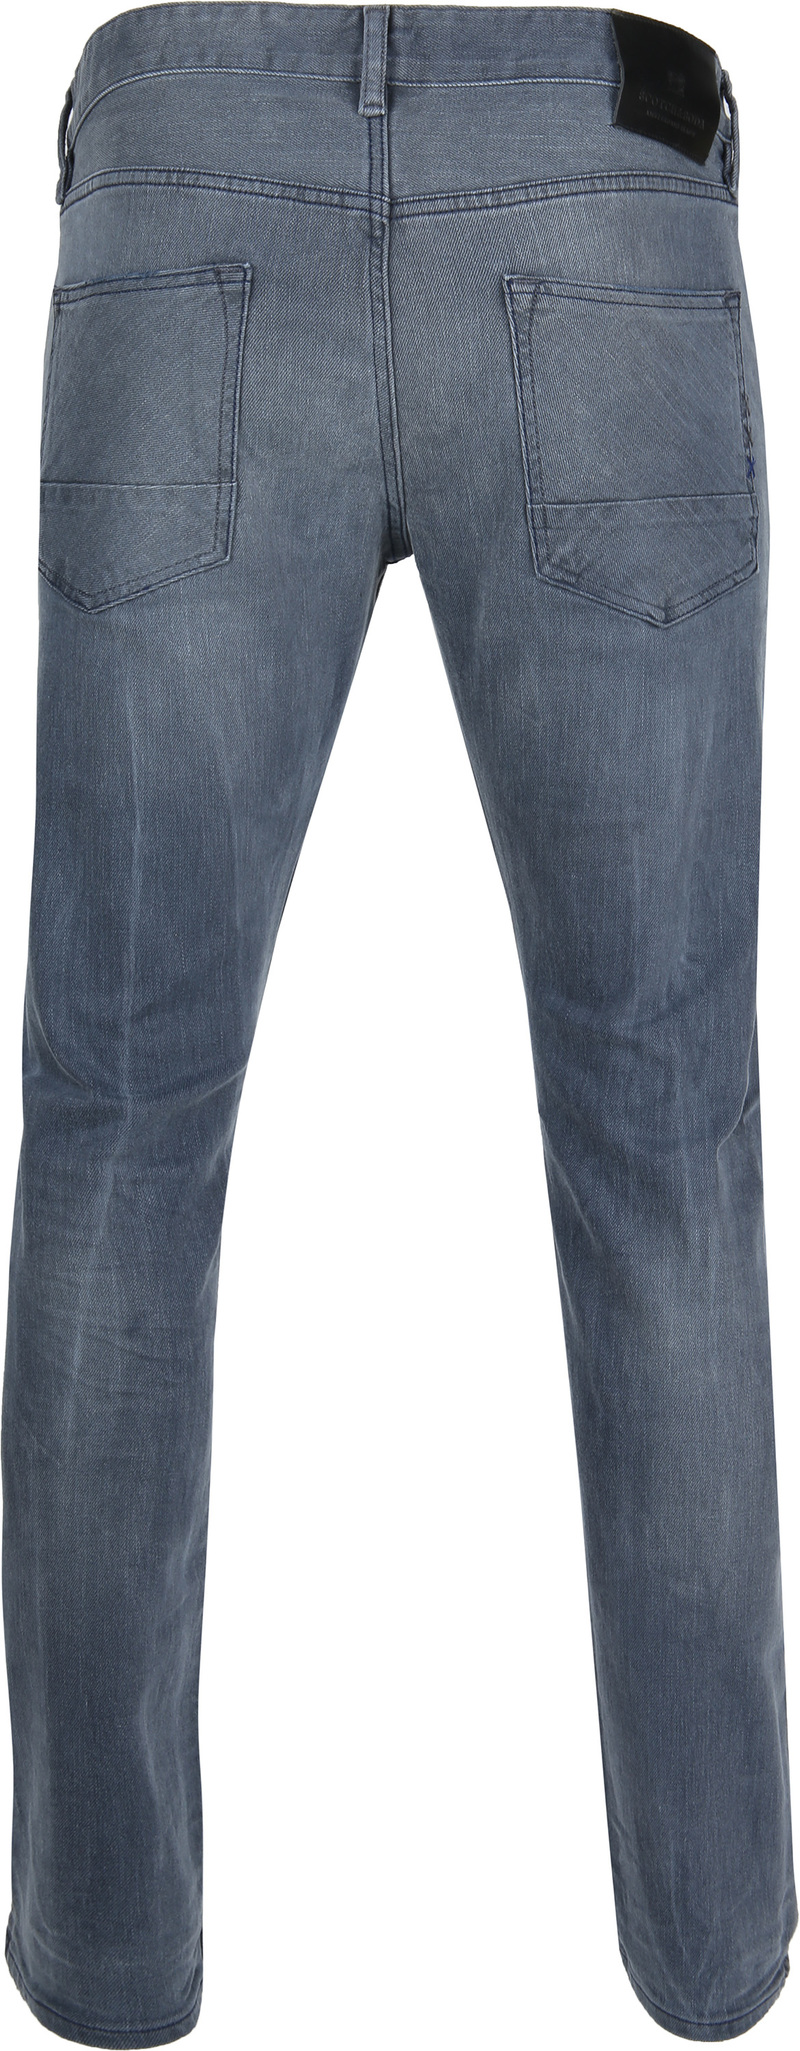 Scotch and Soda Ralston Jeans Concrete Bleach foto 3